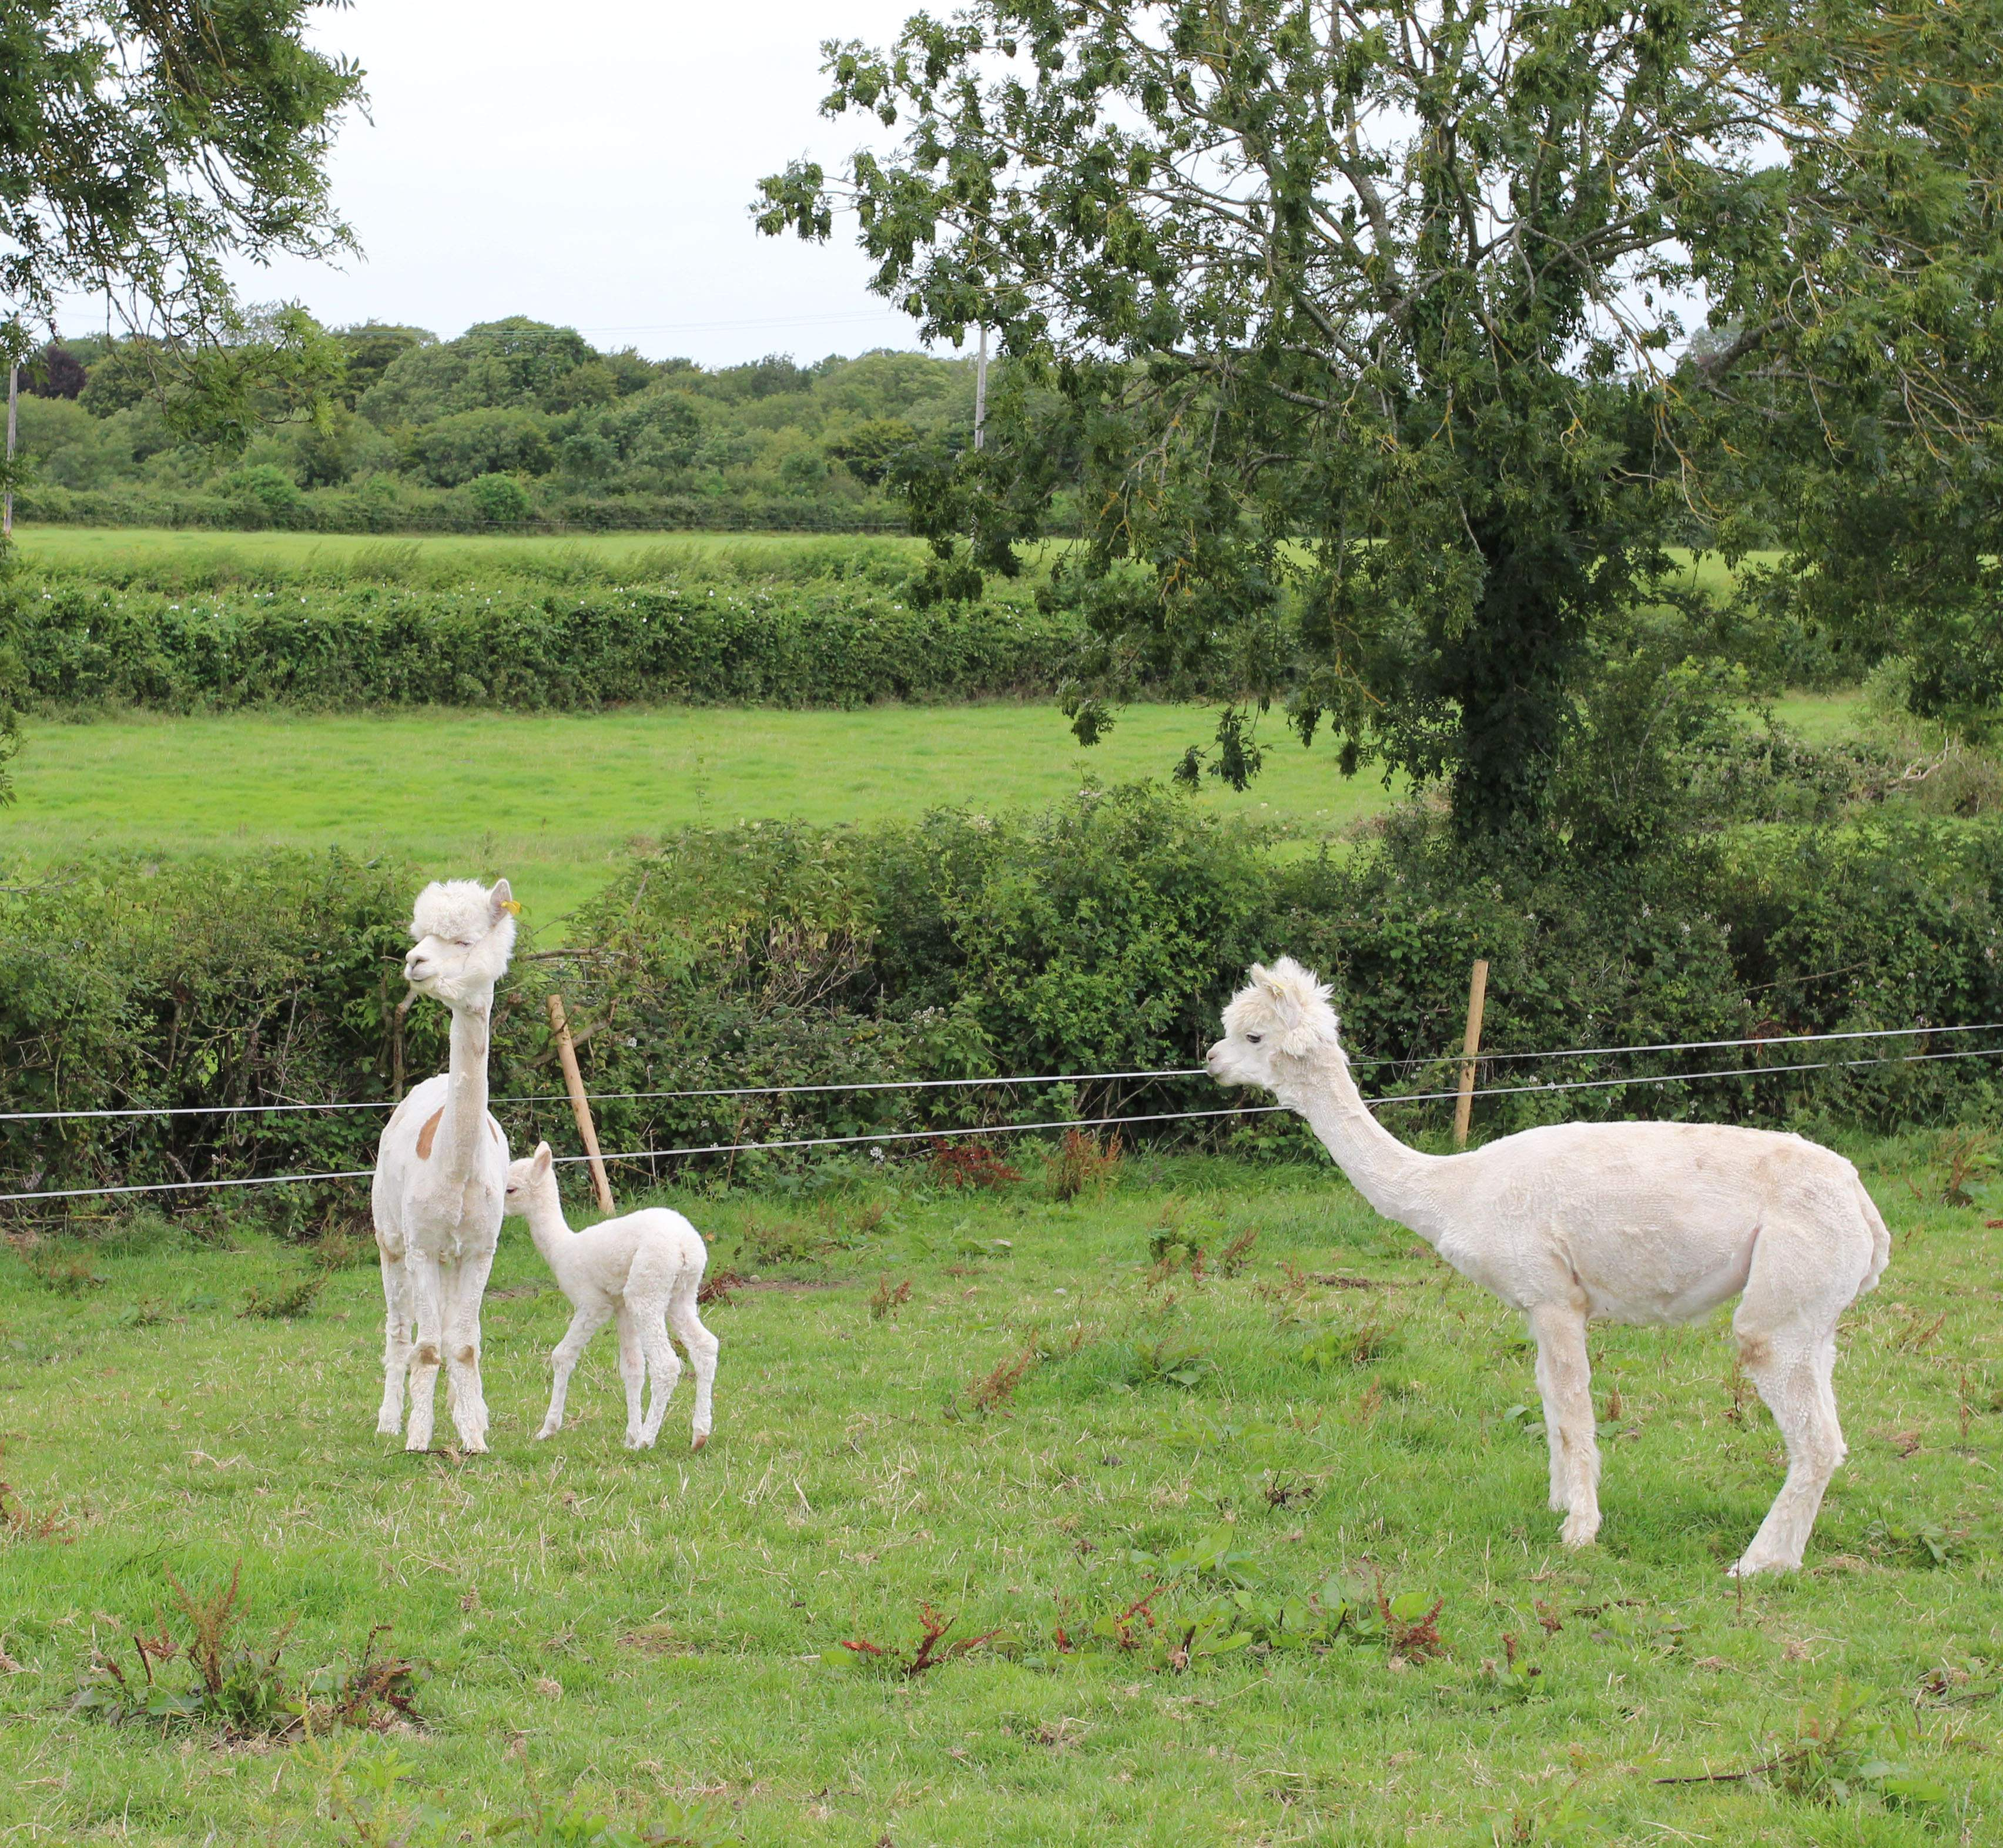 Things to do in County Tipperary, Ireland - Tearaways Pet Farm & Activity Centre - YourDaysOut - Photo 7